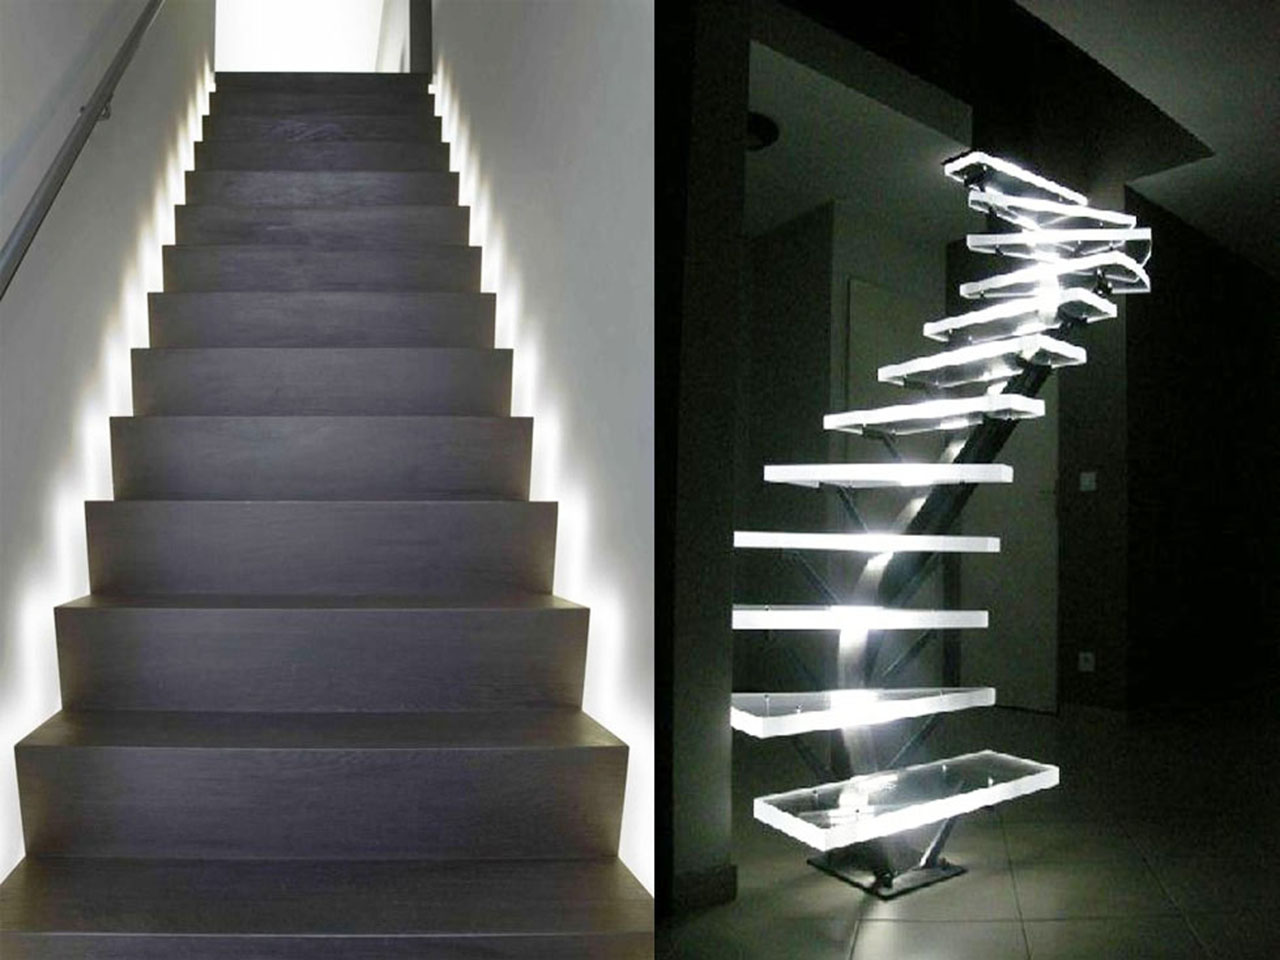 Descubre la decoraci n con luces led y todas sus ventajas - Iluminacion de escaleras ...